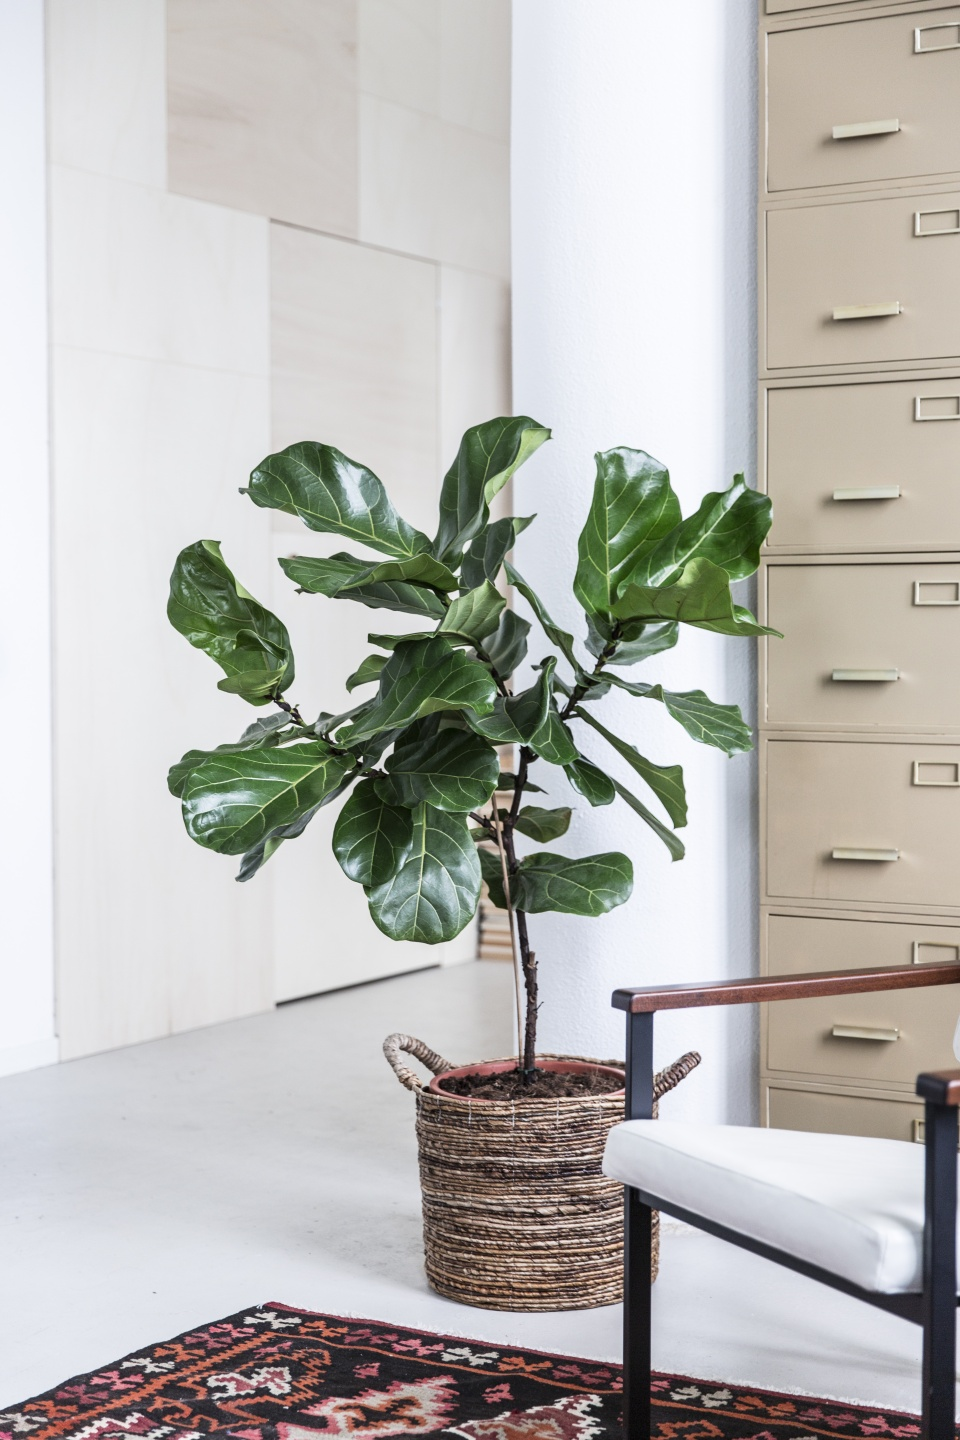 le ficus lyrata ma plante mon bonheur. Black Bedroom Furniture Sets. Home Design Ideas